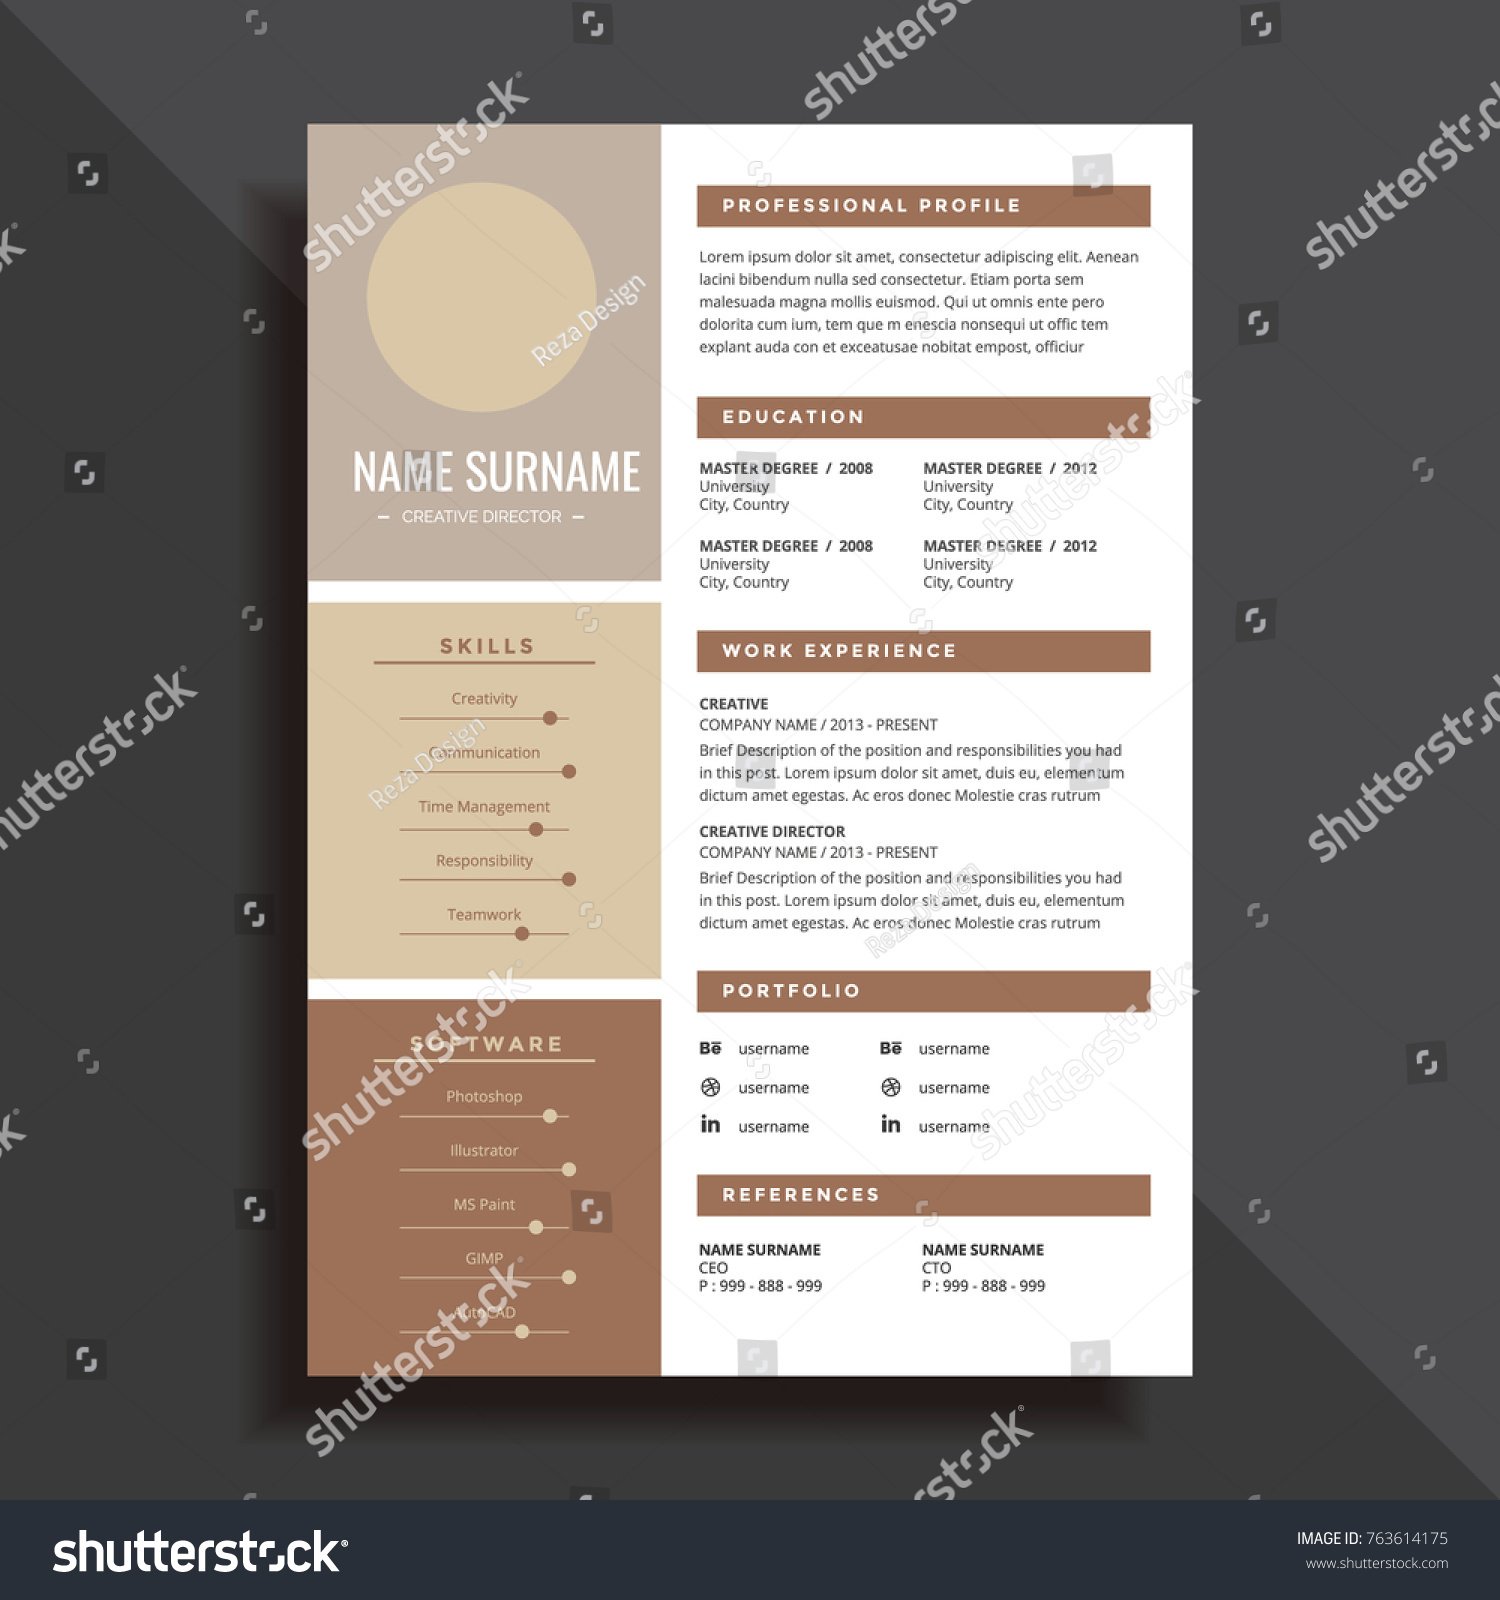 professional simple resume cv template design のベクター画像素材